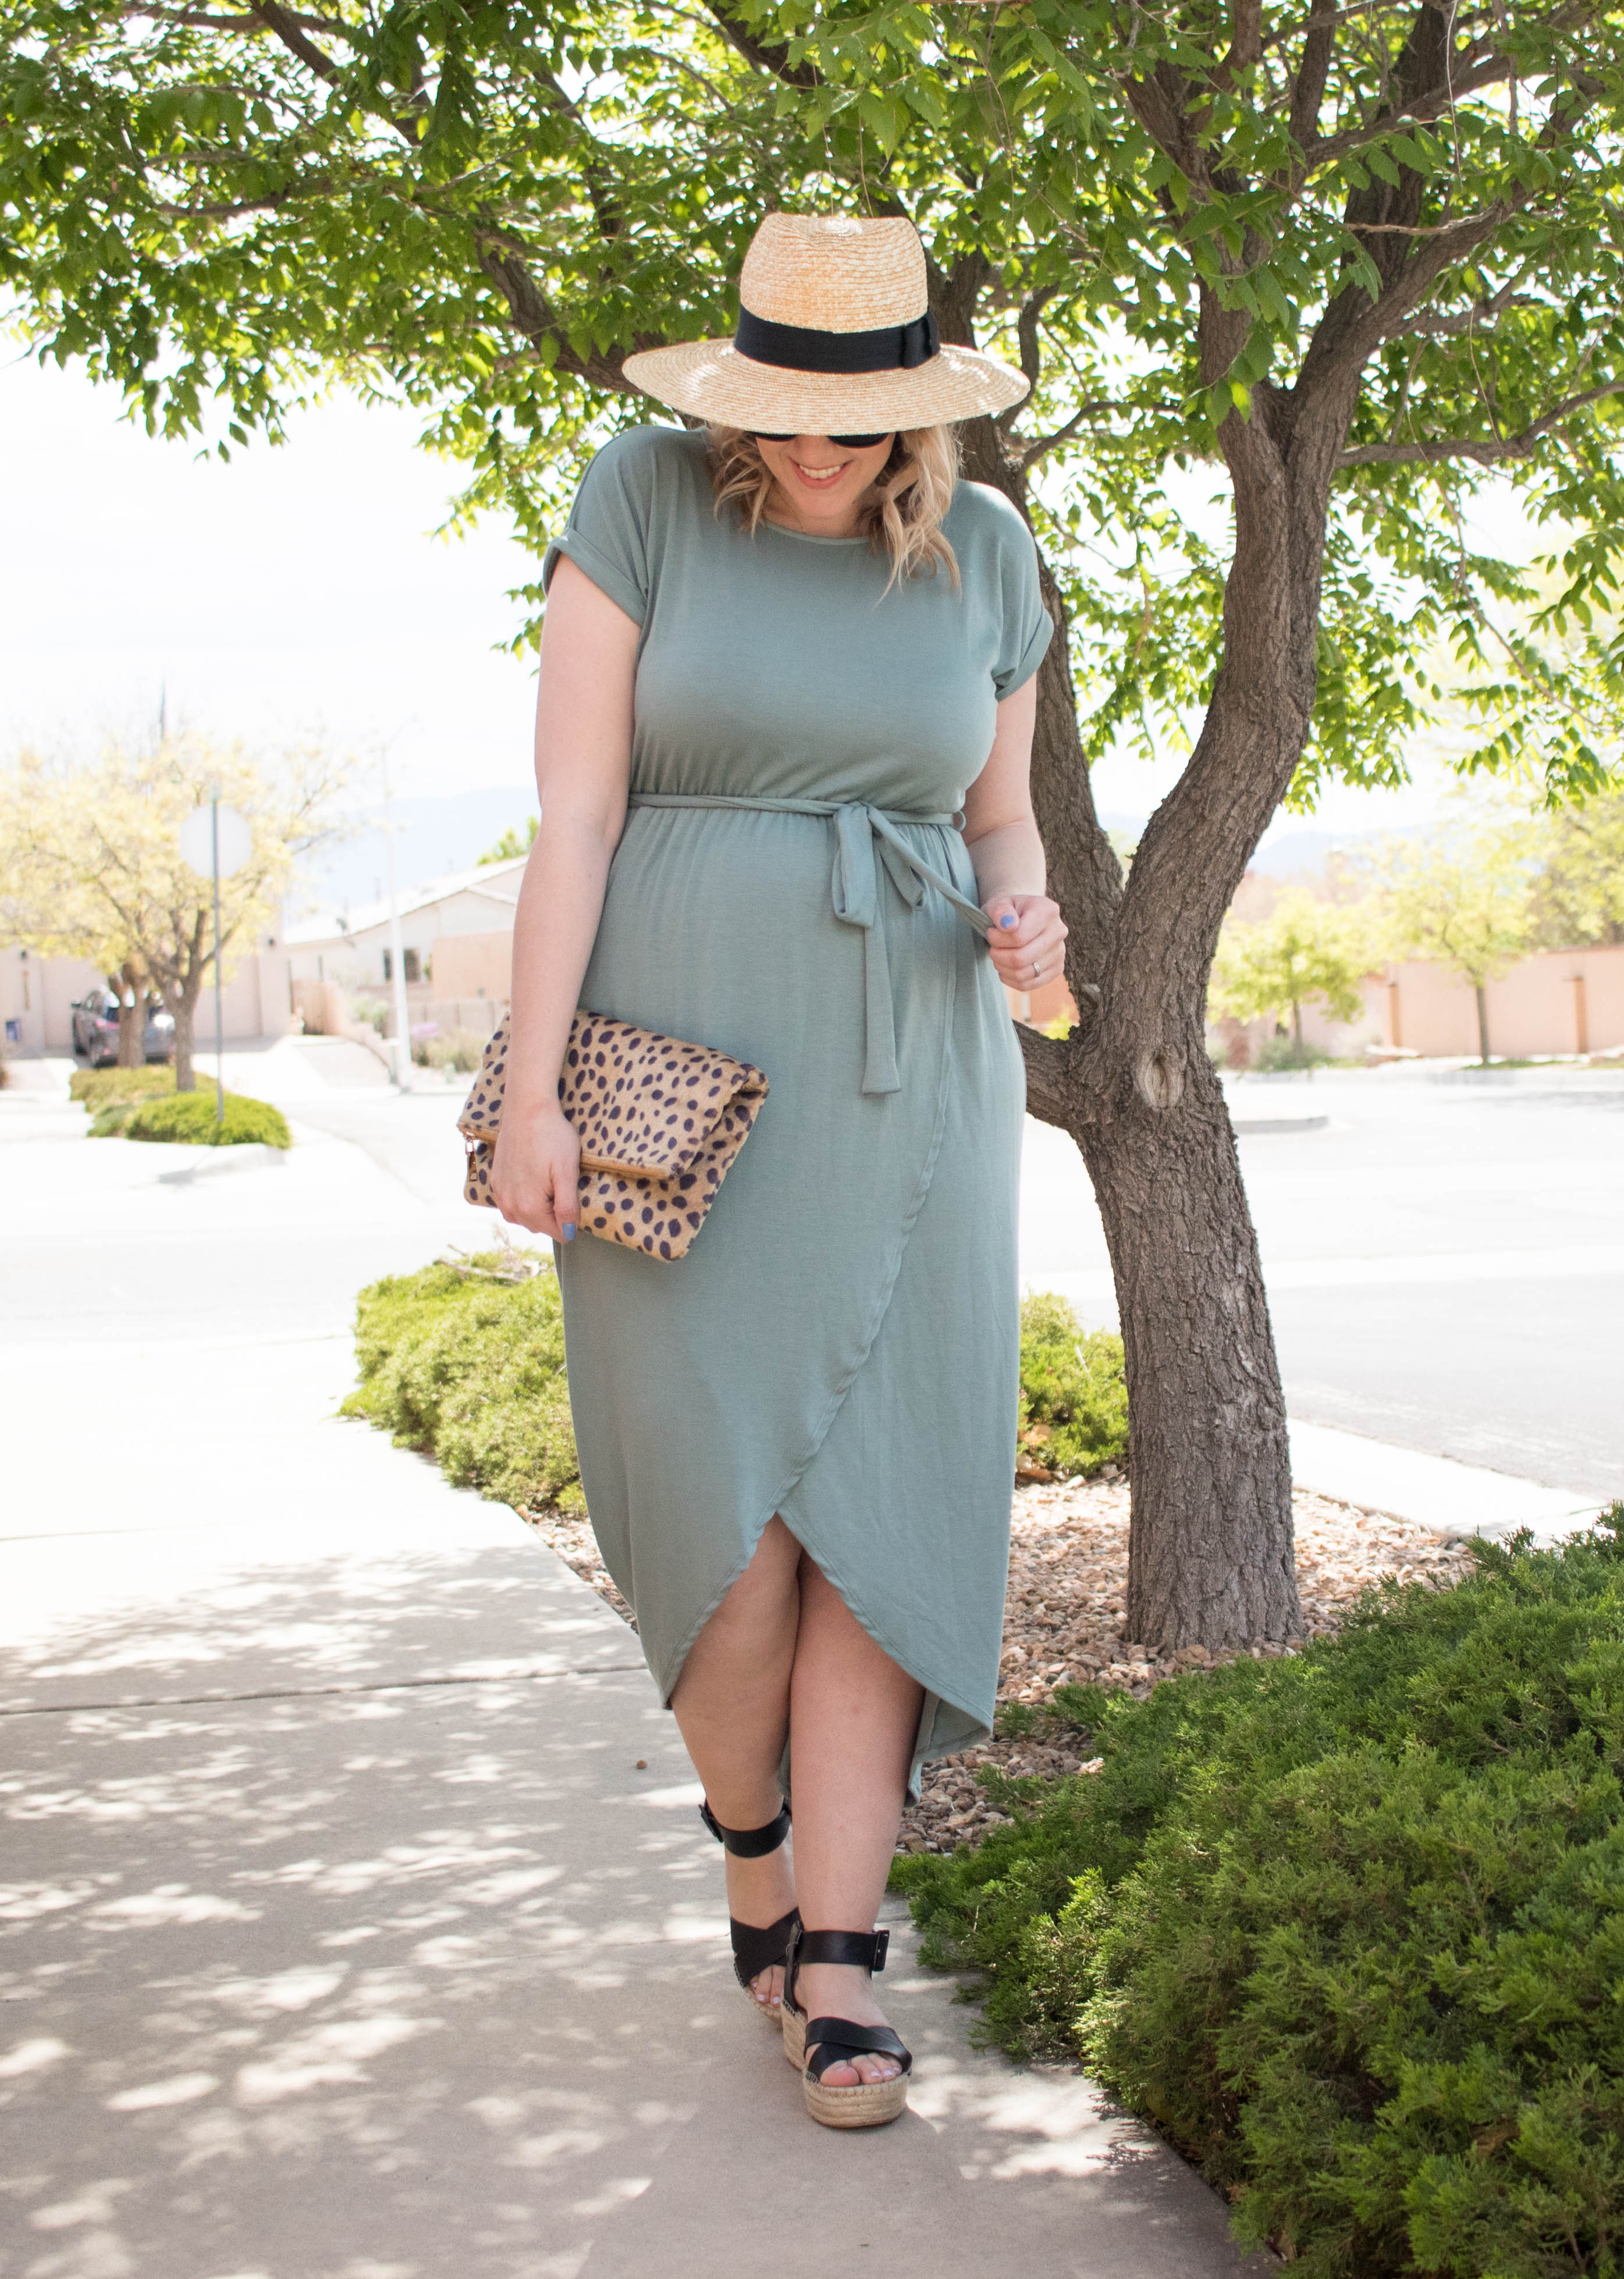 maternity outfit bump style #bumpstyle #pregnancy #momstyle